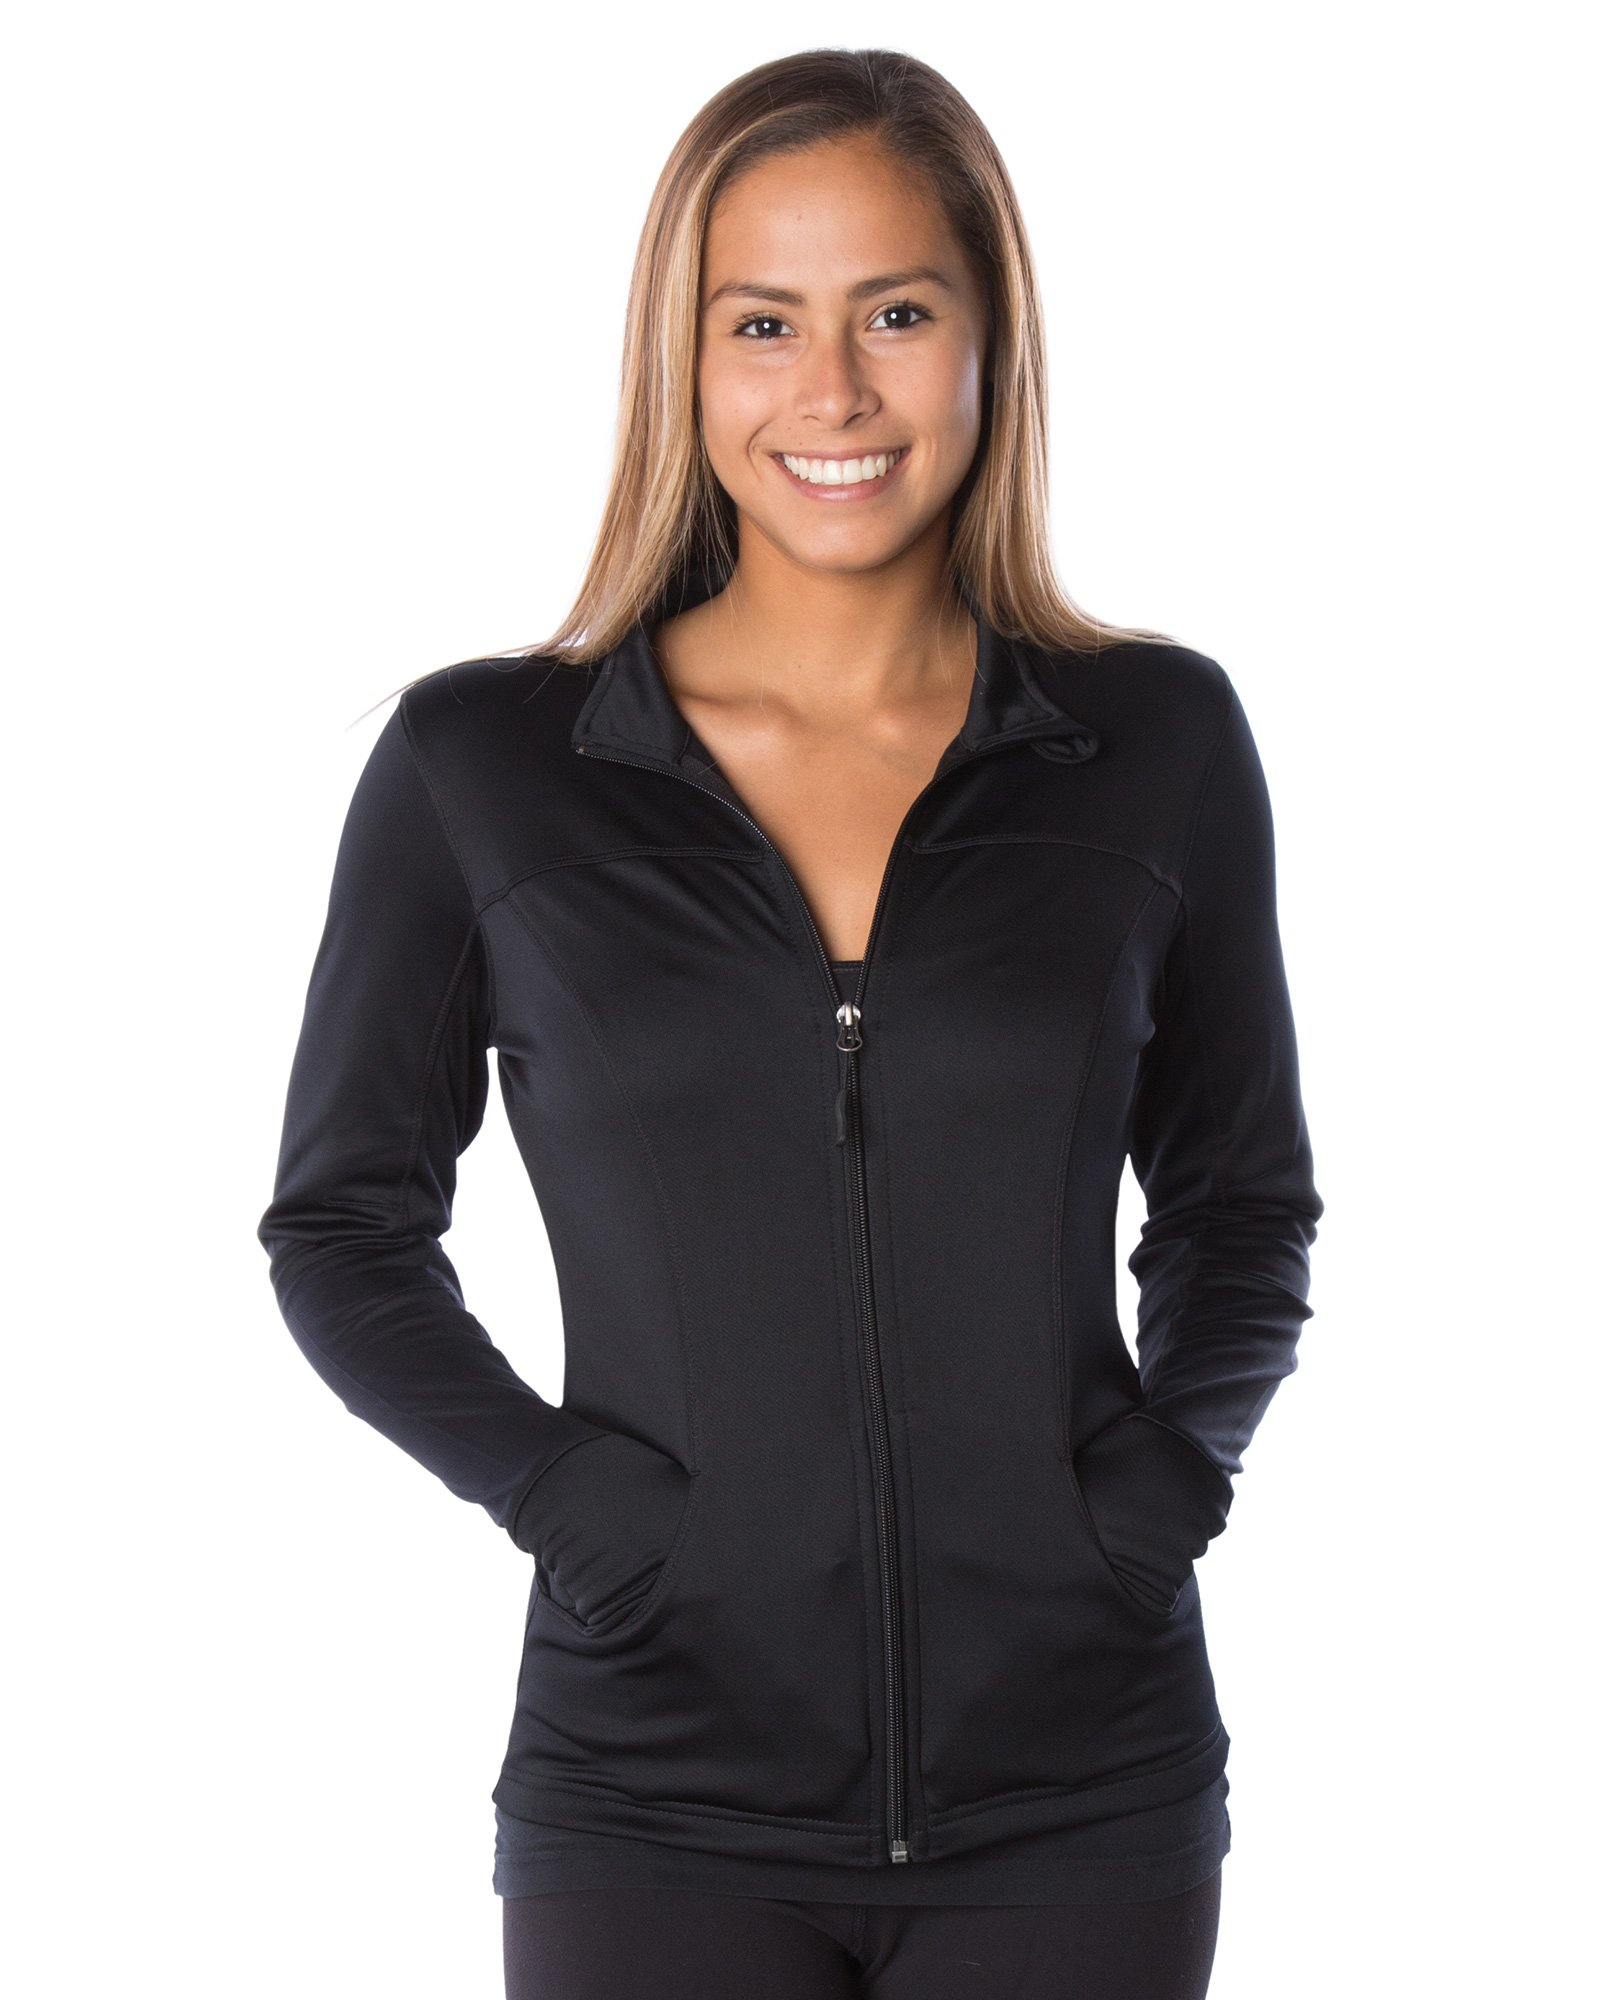 Global Women's Slim Fit Lightweight Full Zip Yoga Workout Jacket S Black